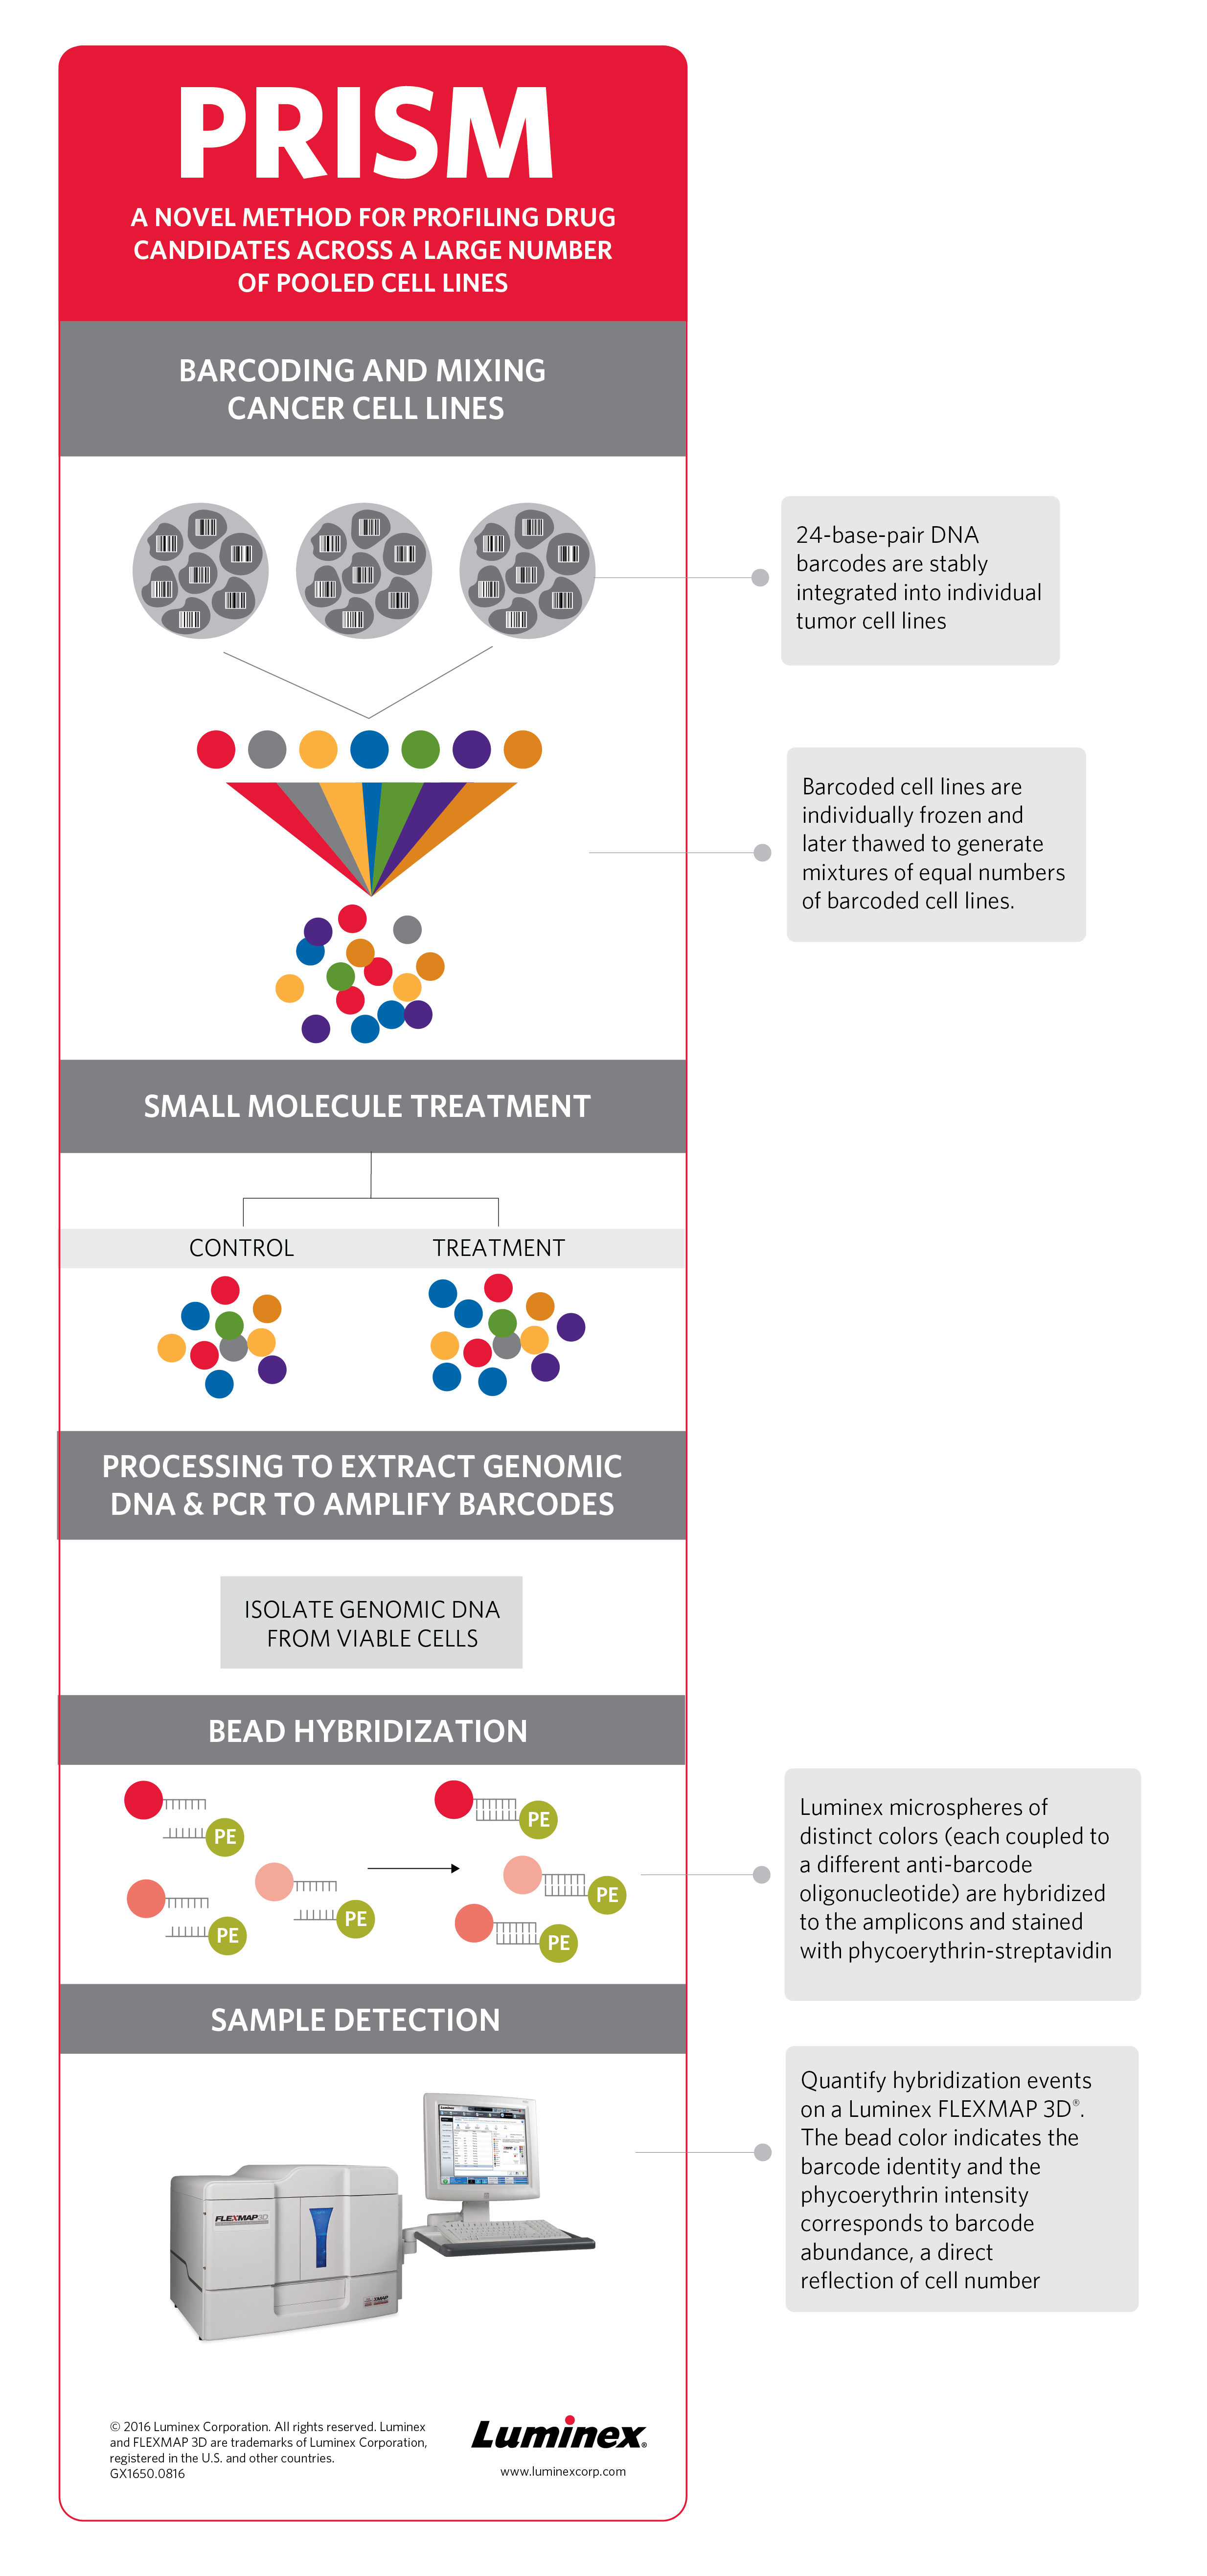 PRISM: A Novel Bead-Based Biological Barcode Assay Infographic - A Novel Method for Profiling Drug Candidates Across Large Number of Pooled Cell Lines